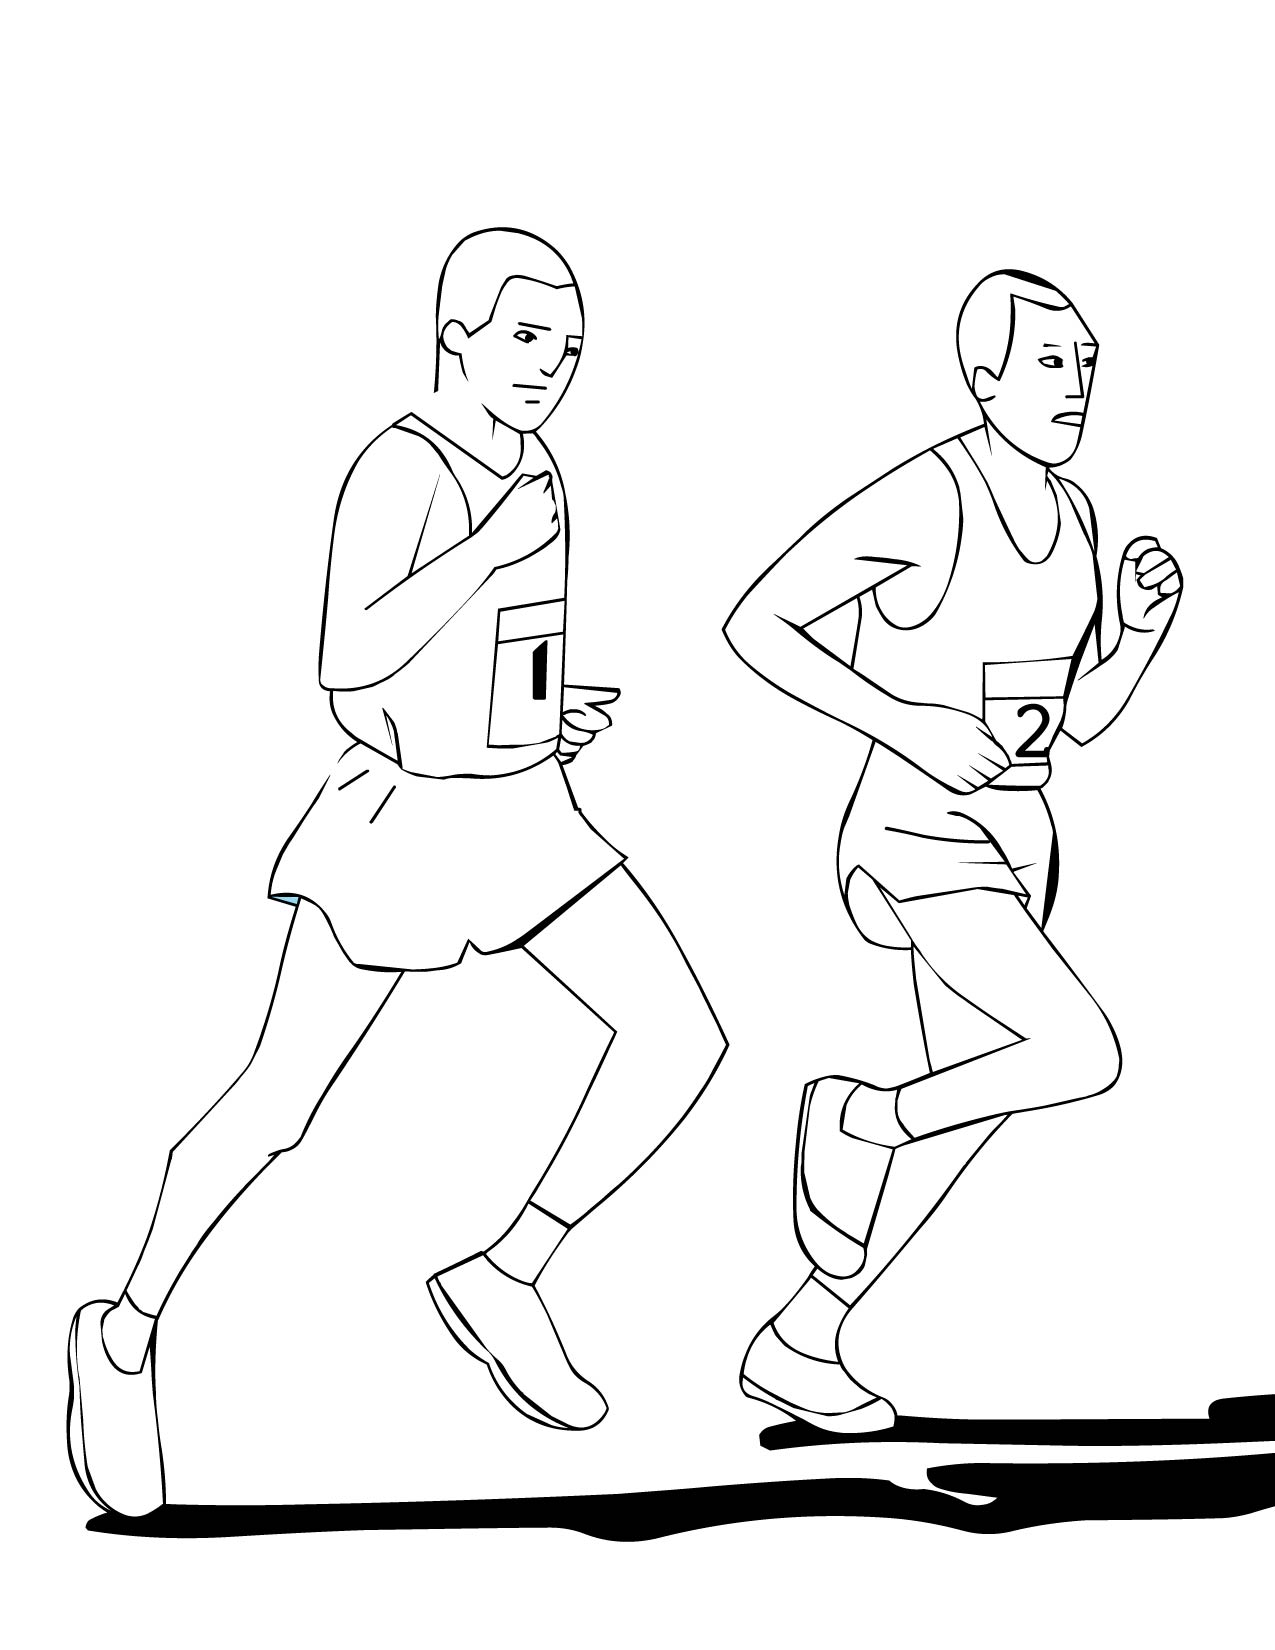 Running Coloring Pages At Getcolorings